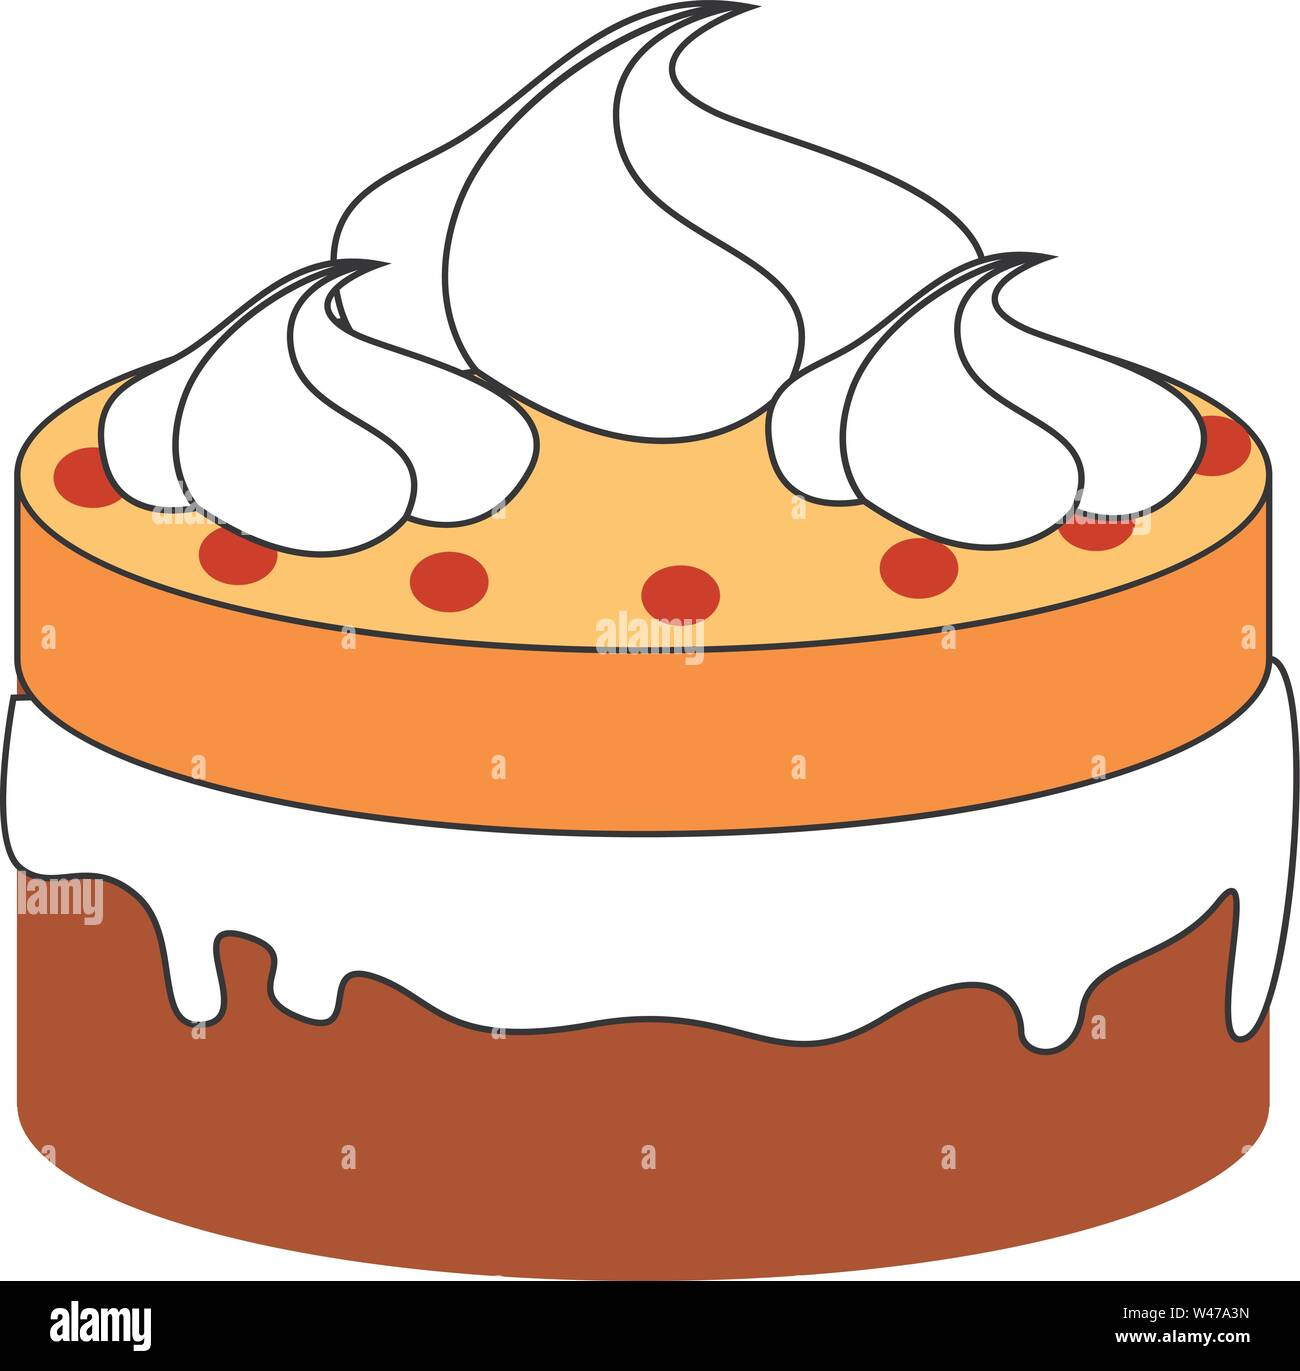 Small cake, illustration, vector on white background. - Stock Image